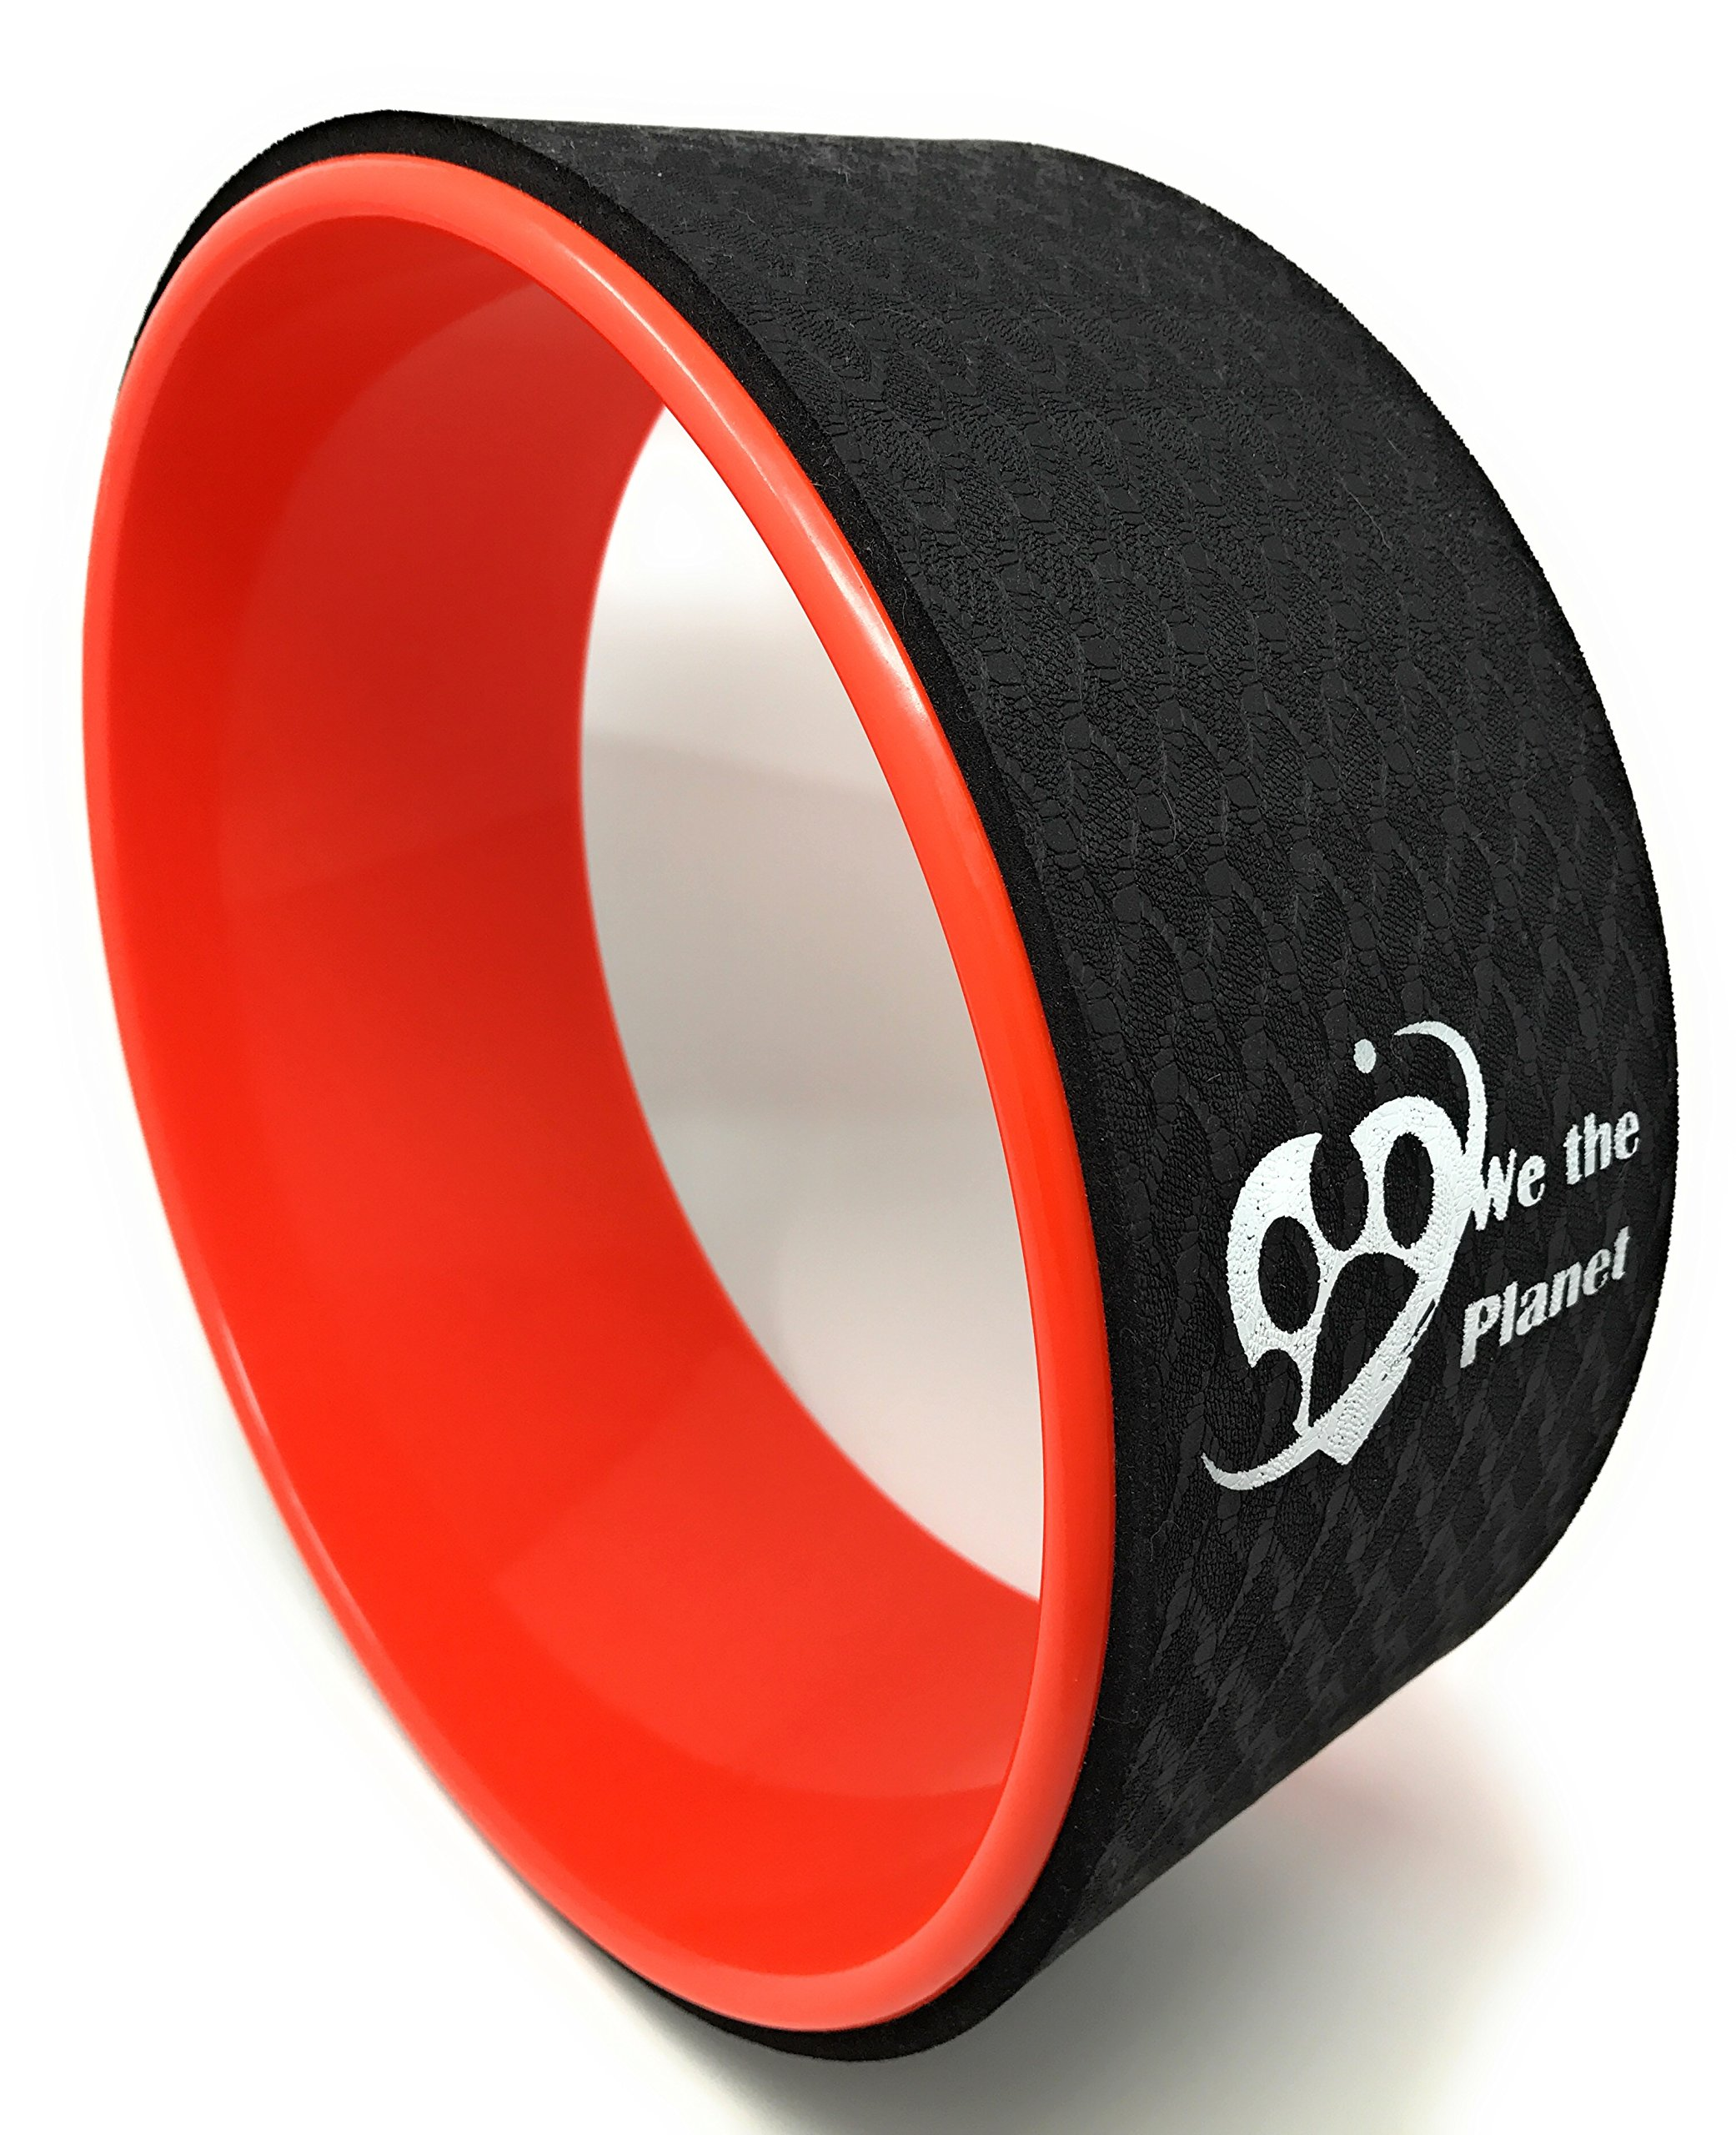 We The Planet Yoga Wheel | Eco-Friendly Dharma/Back Stretcher Wheel |Roller Wheel Improves Backbends and Technique